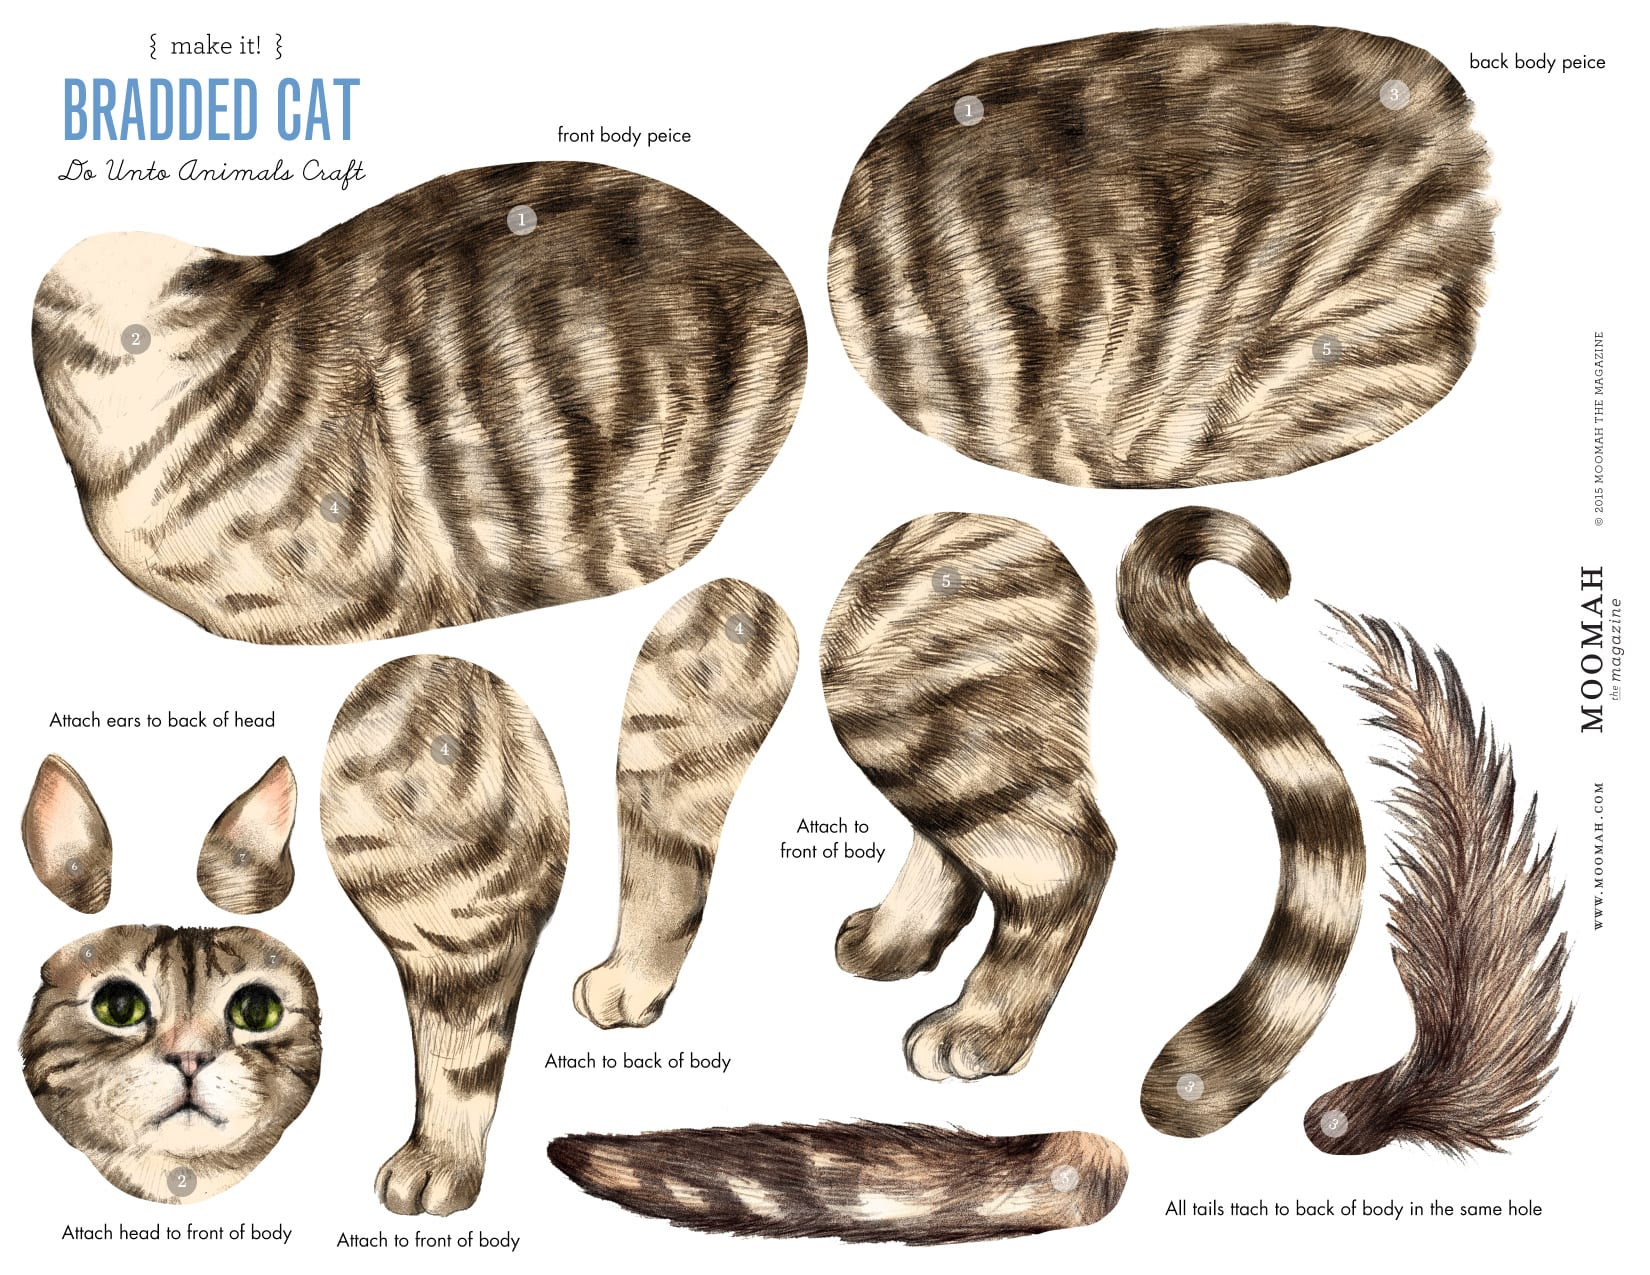 Hockhockson Bradded Cat Craft Template Downloadable